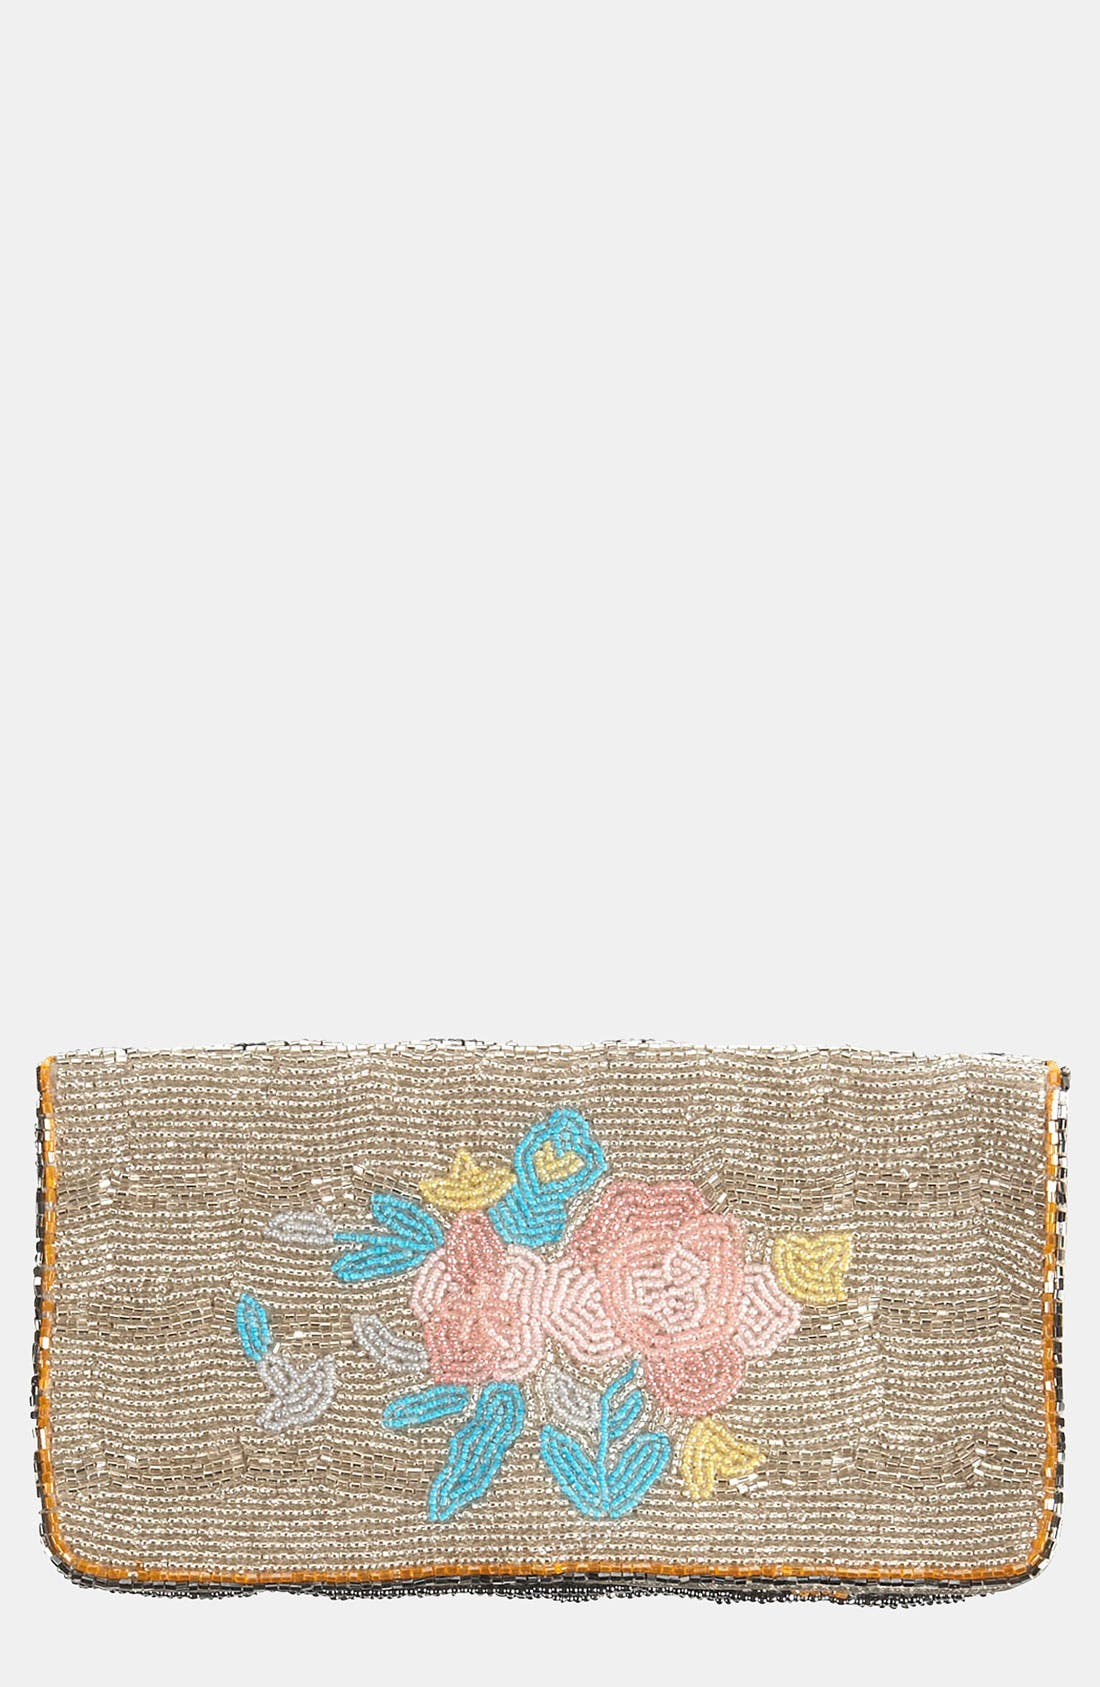 Alternate Image 1 Selected - Topshop 'Rose' Beaded Clutch